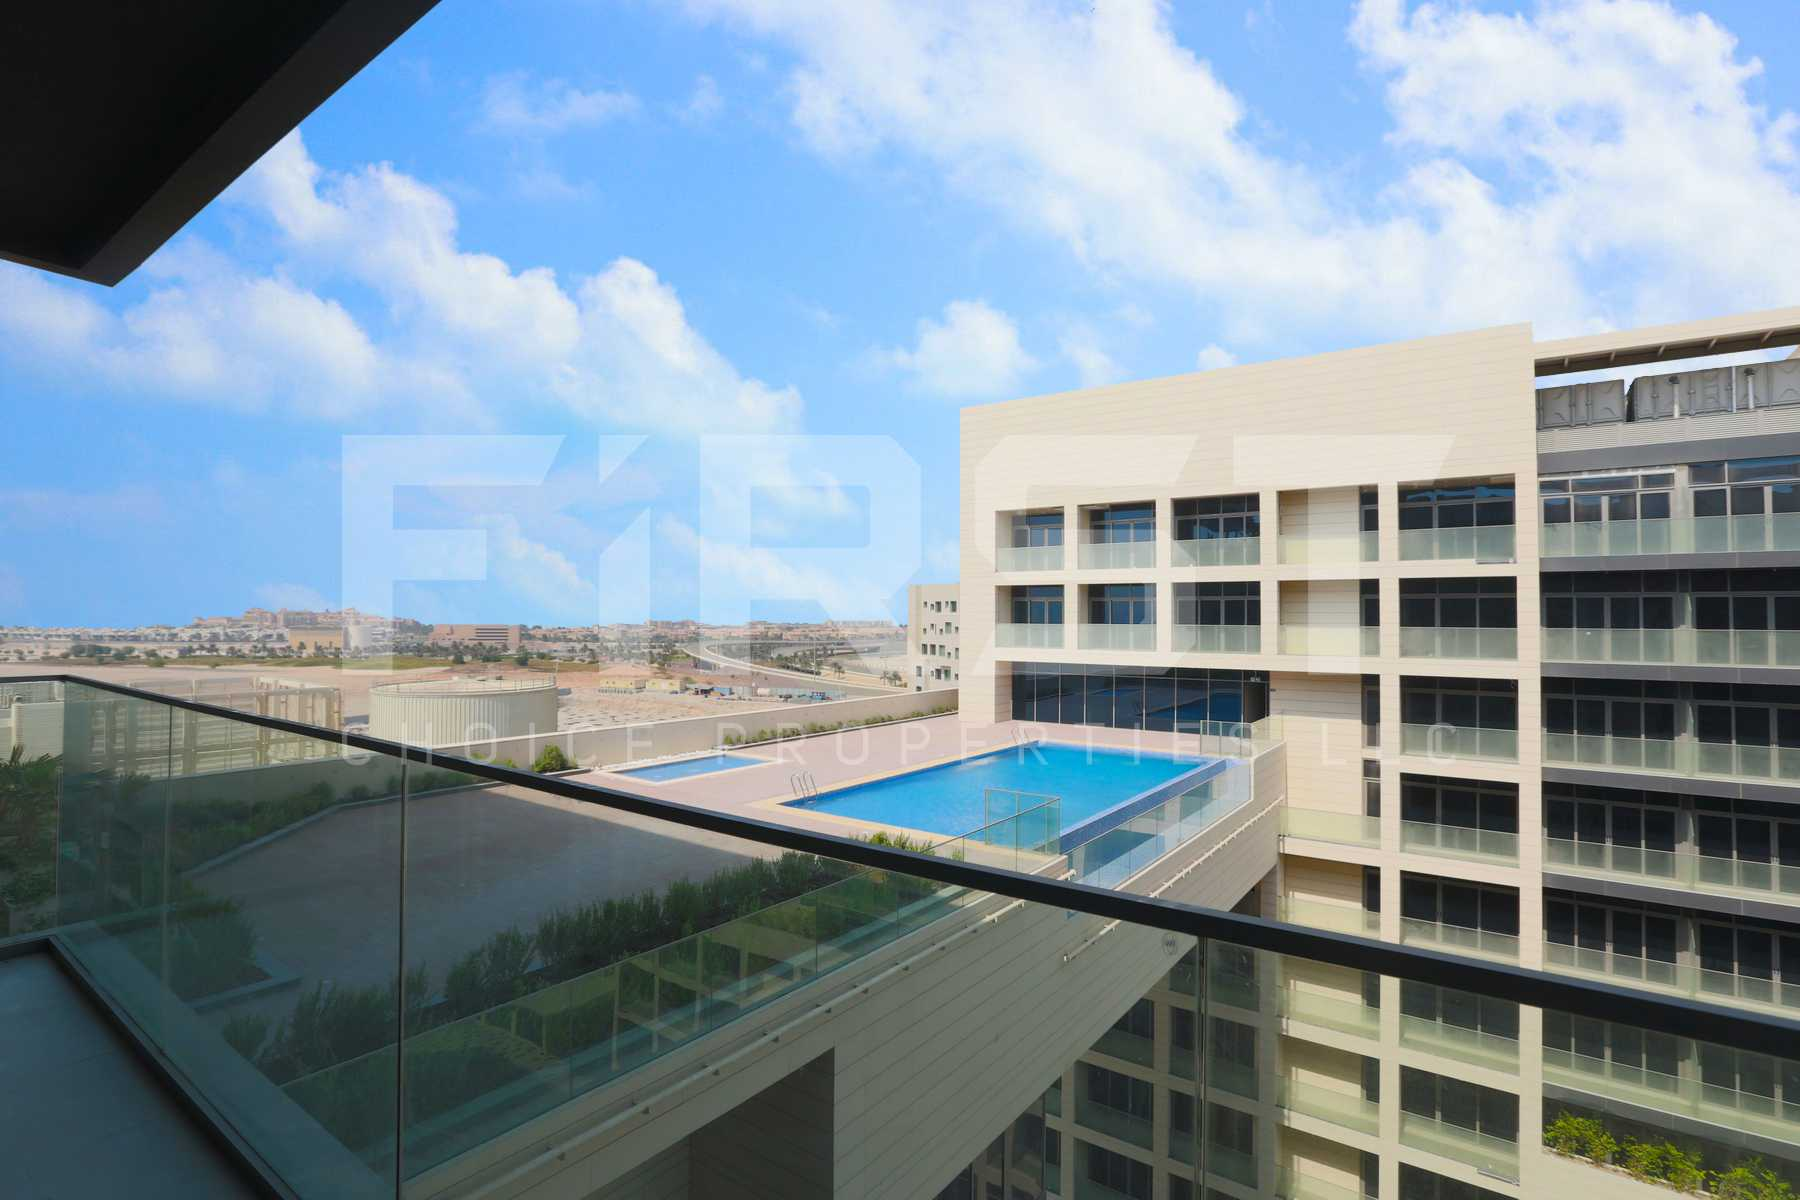 Internal of Studio Apartment in Park View Saadiyat Island Abu Dhabi UAE (9).jpg